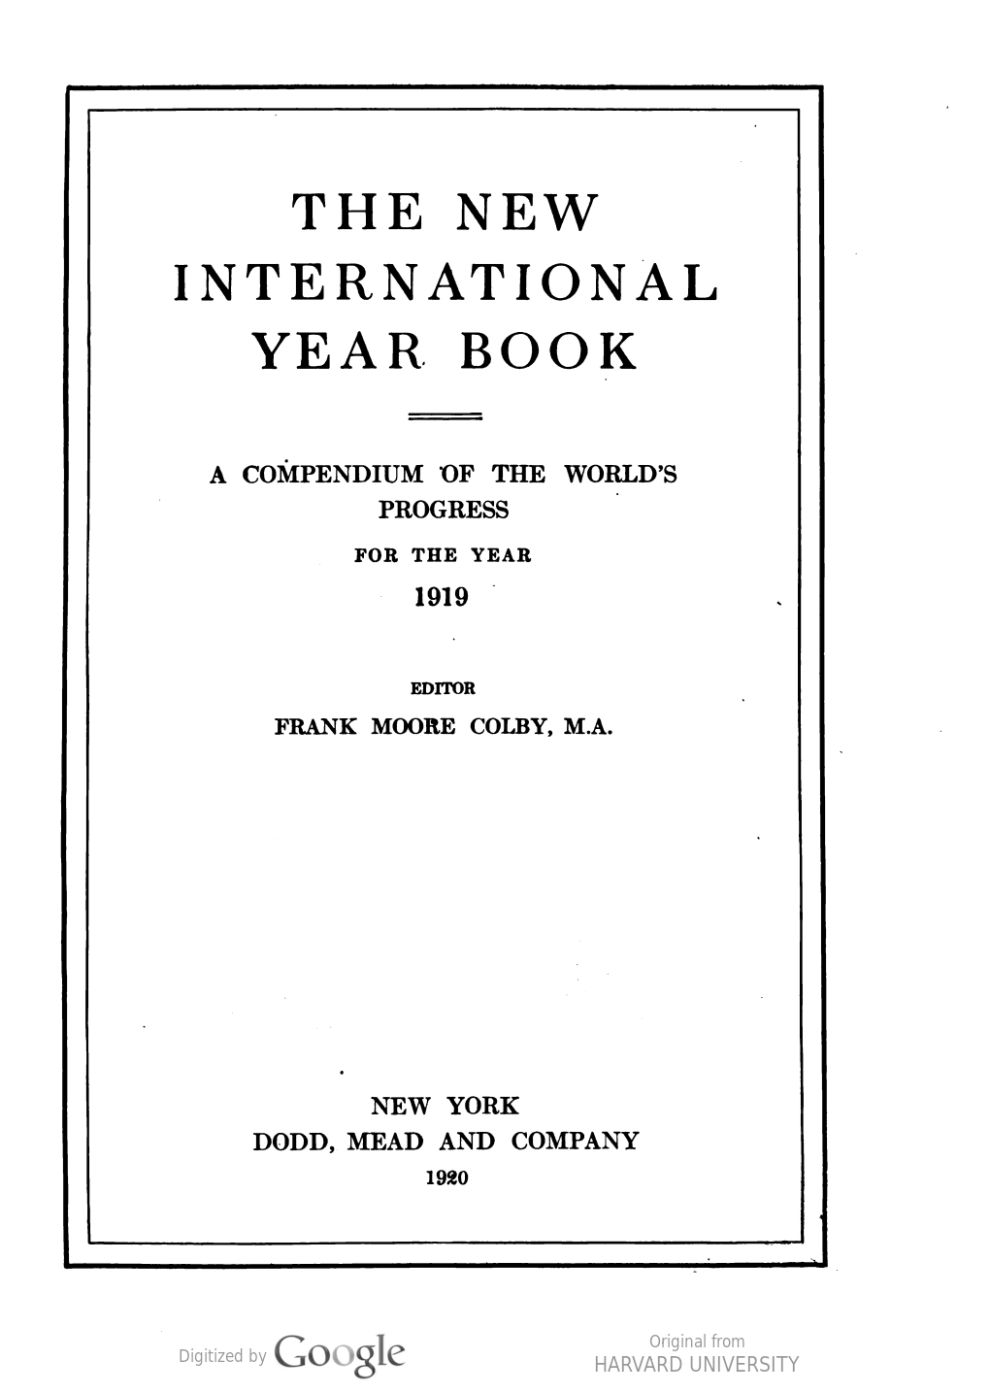 The New International Year Book: A Compendium of the World's Progress from the Year 1919 edited by Frank Moore Colby, M.A., Dodd, Mead and Company, New York, 1920, page 489-490, not illustrated